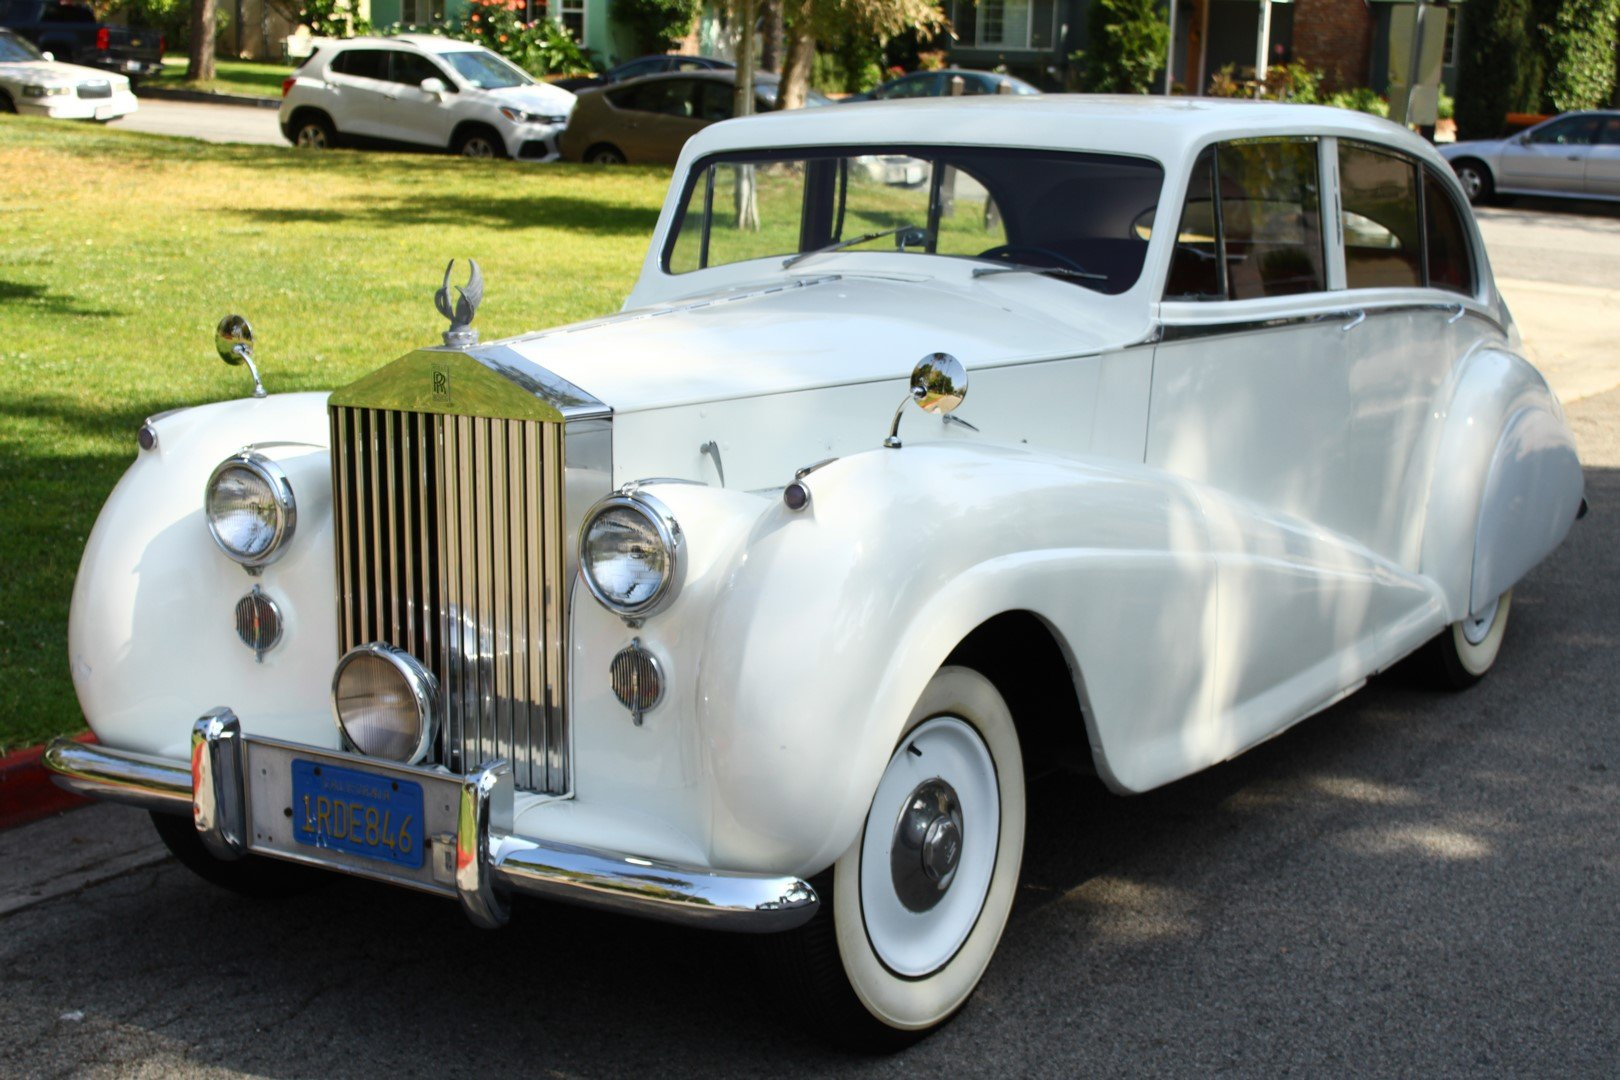 1950 ROLLS-ROYCE SILVER WRAITH For Sale (picture 1 of 6)